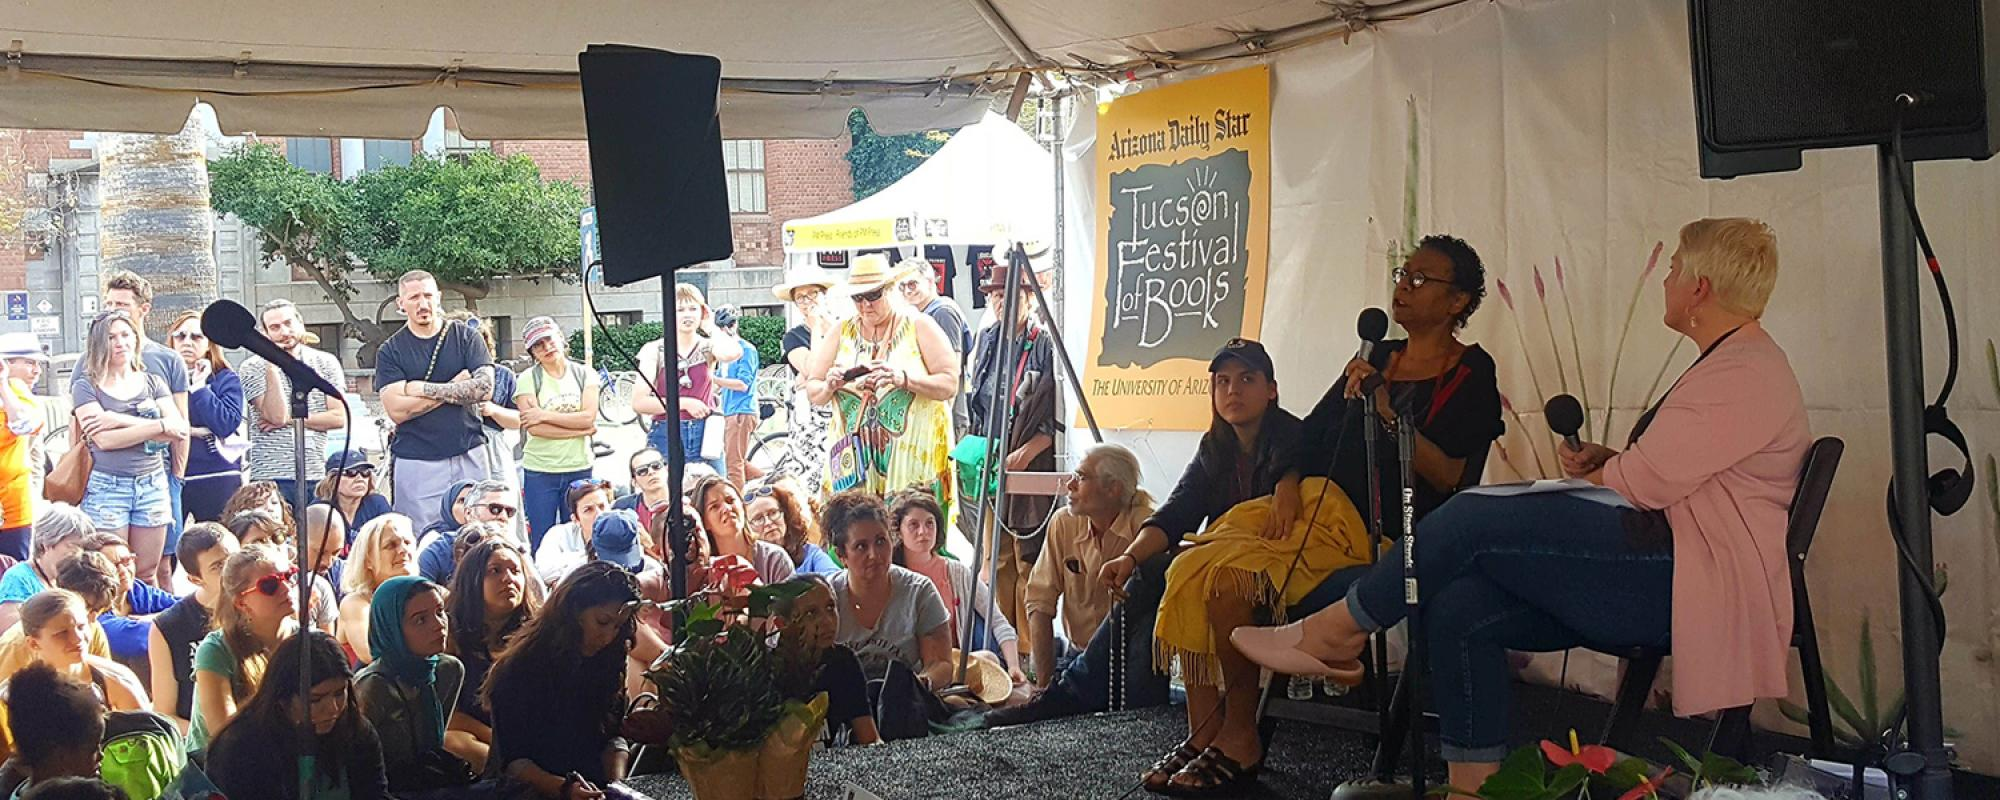 Speakers and audience in the SBS tent at the Tucson Festival of Books